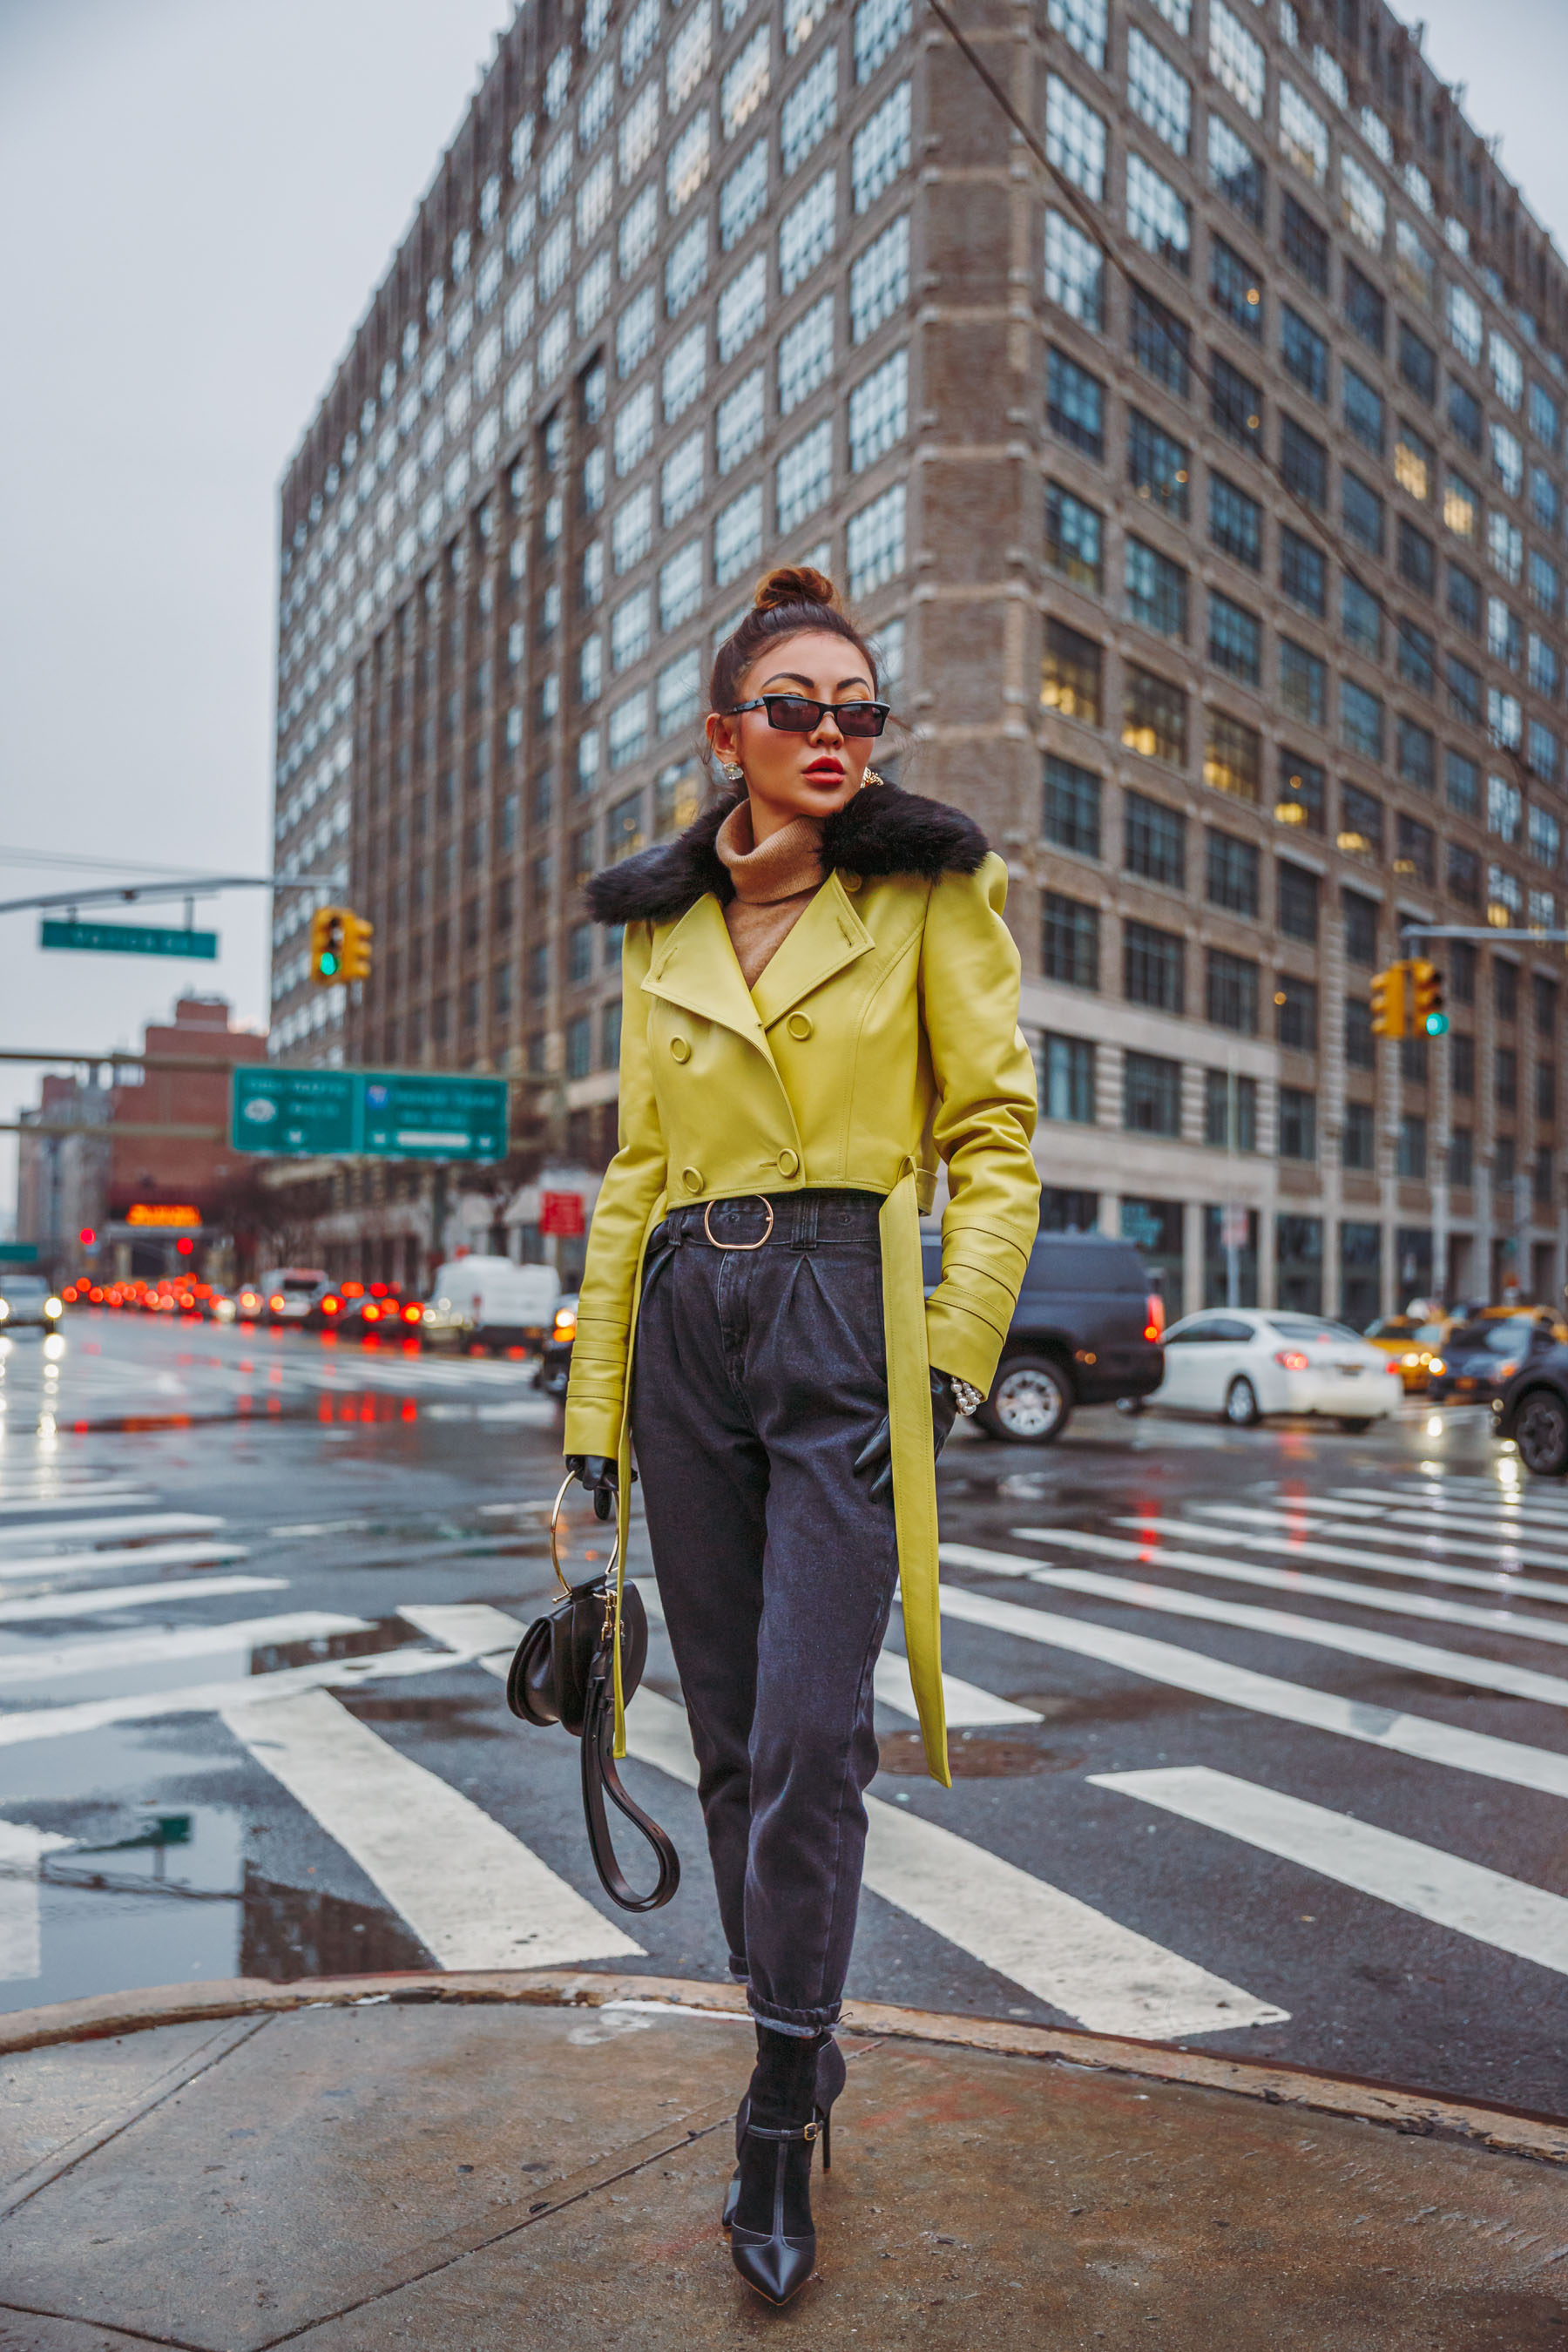 NYFW street style - Yellow Leather Jacket, Ferragamo Handbag // Notjessfashion.com